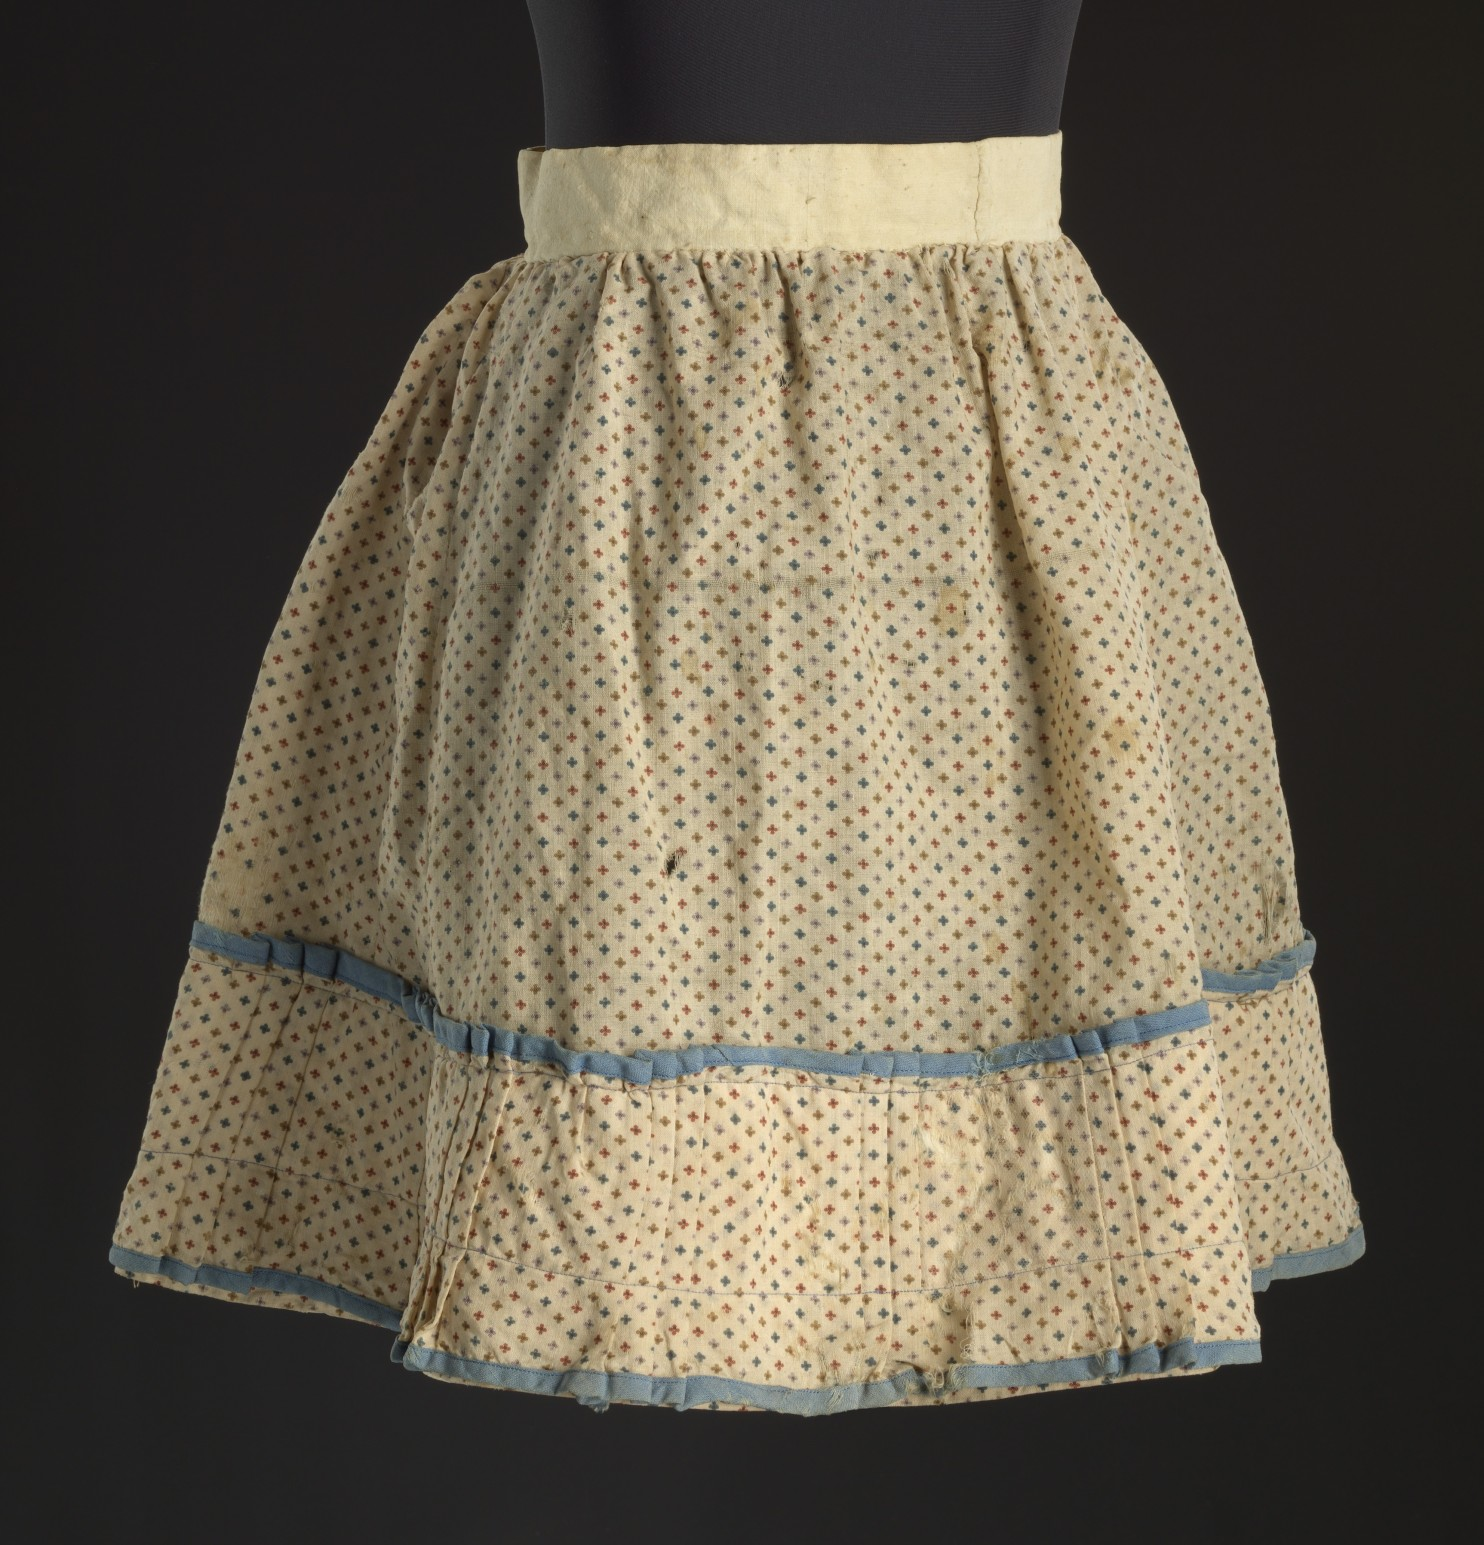 This flowered skirt worn by a little girl enslaved in Virginia will be on display at the National Museum of African American History and Culture. (Collection of the Smithsonian National Museum of African American History and Culture, Gift of the Black Fashion Museum founded by Lois K. Alexander-Lane)